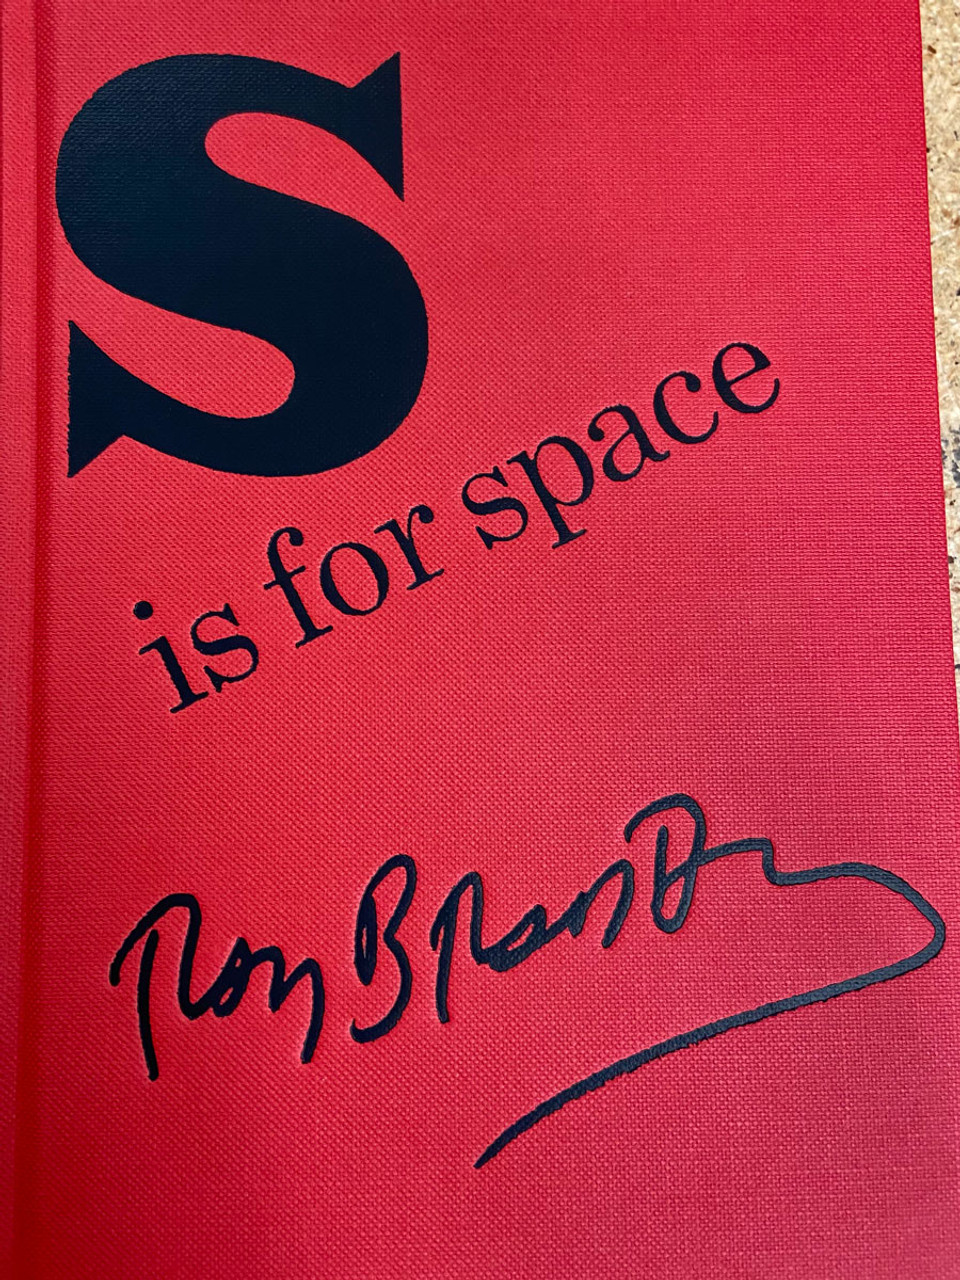 """Ray Bradbury, """"R Is For Rocket"""", """"S Is For Space"""", """"Forever And The Earth"""" Signed Limited Edition No. 49 of 100,  Slipcased [Very Fine]"""